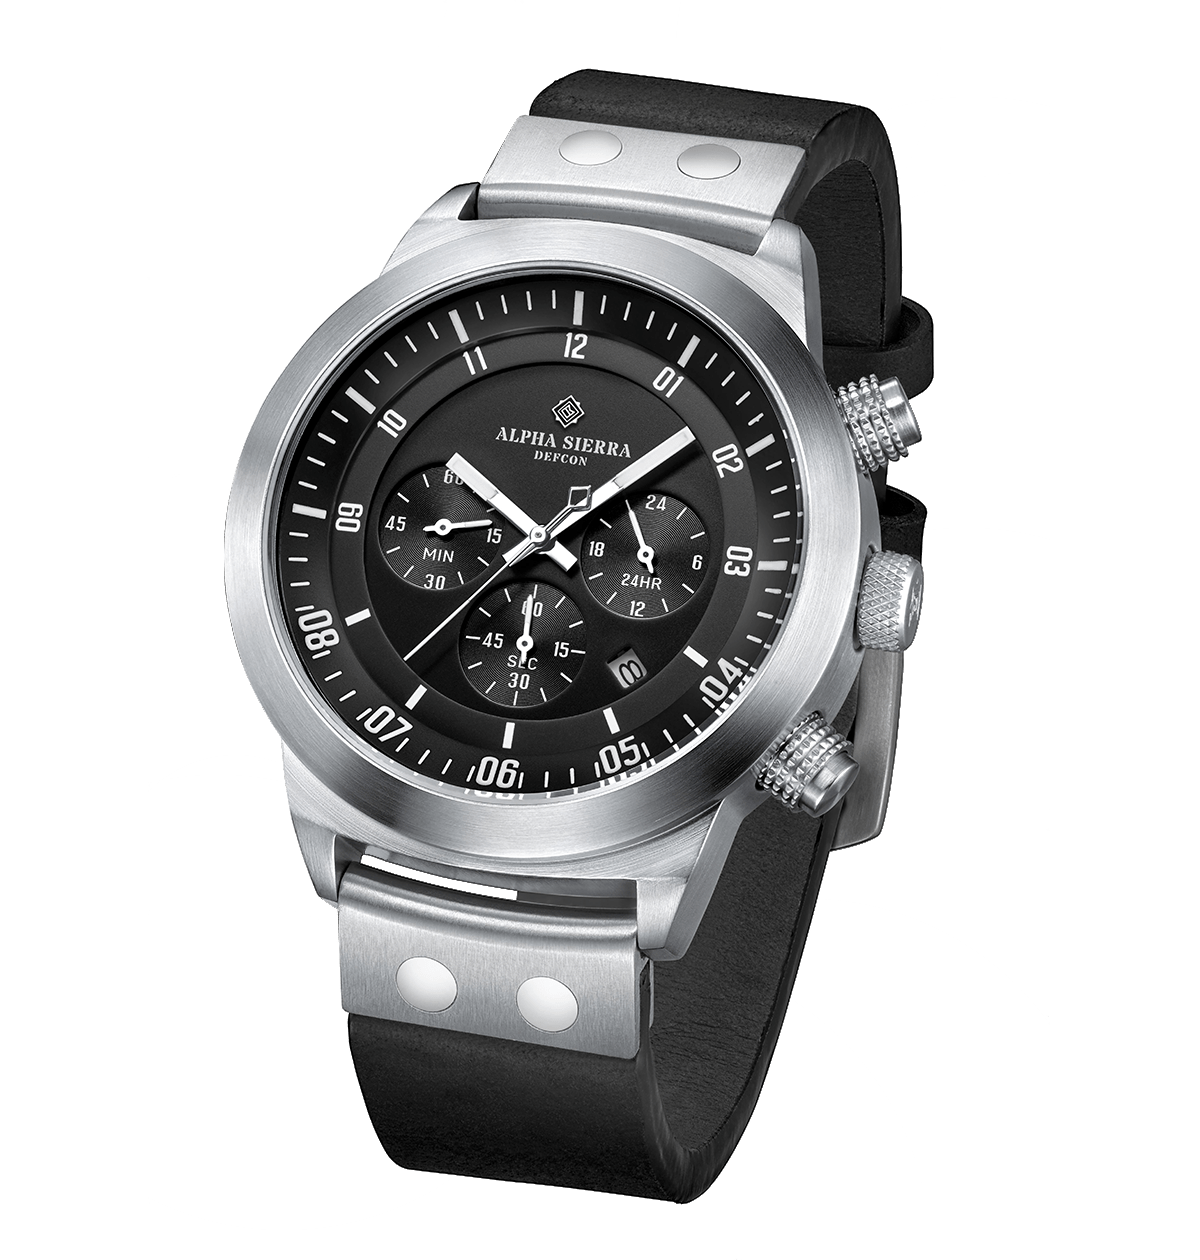 Alpha Sierra Watches - Defcon LGM-30S